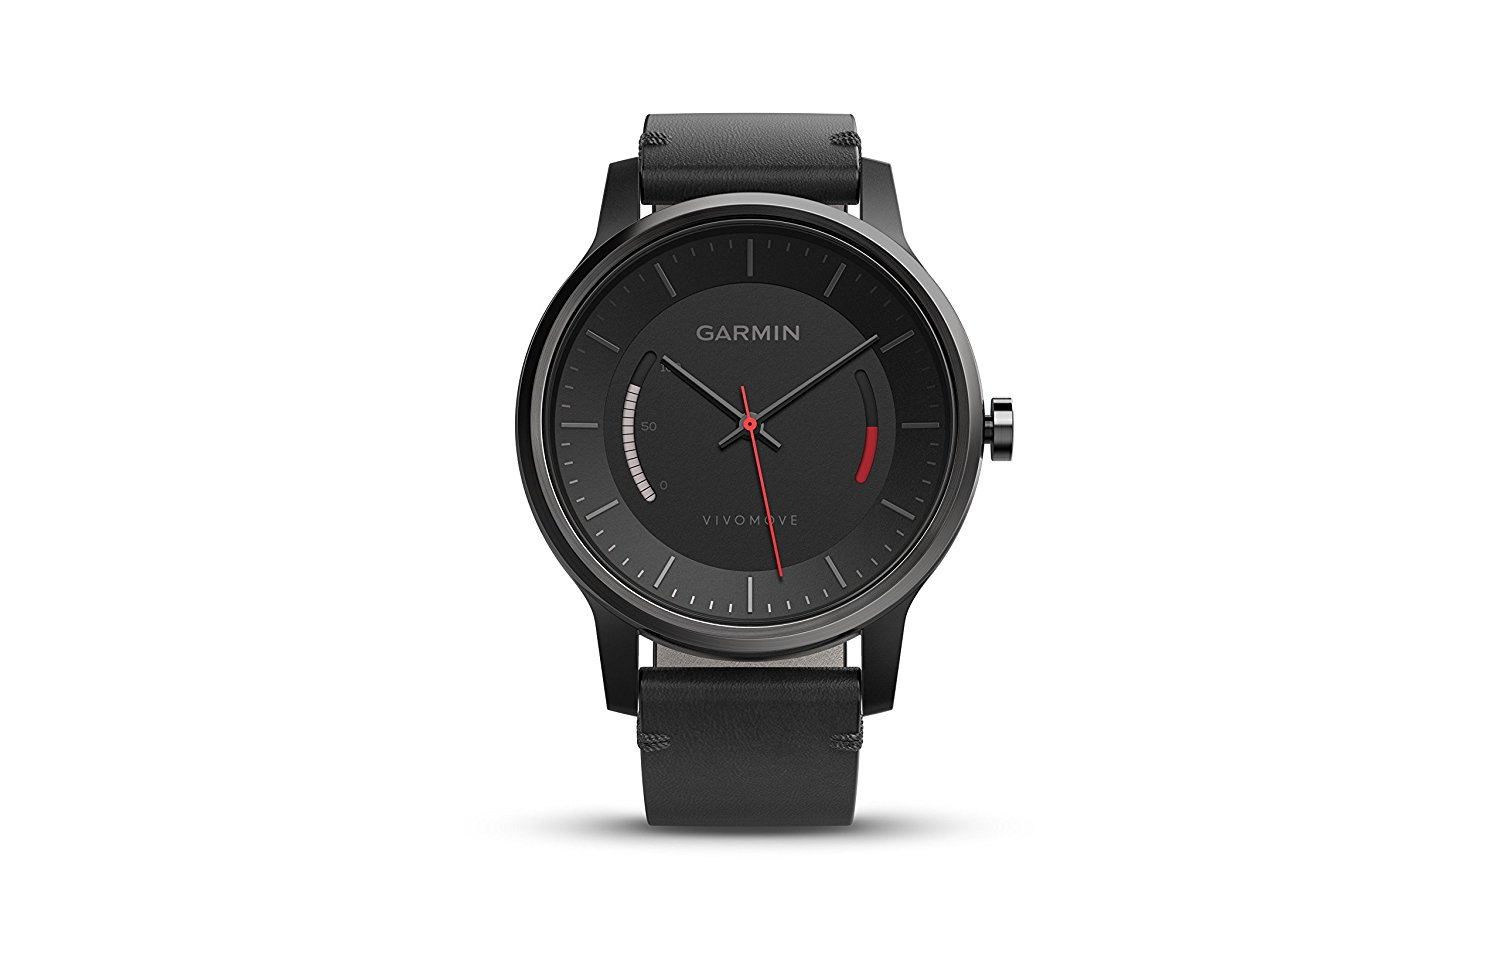 vivomove fitness tracker and health smartwatch